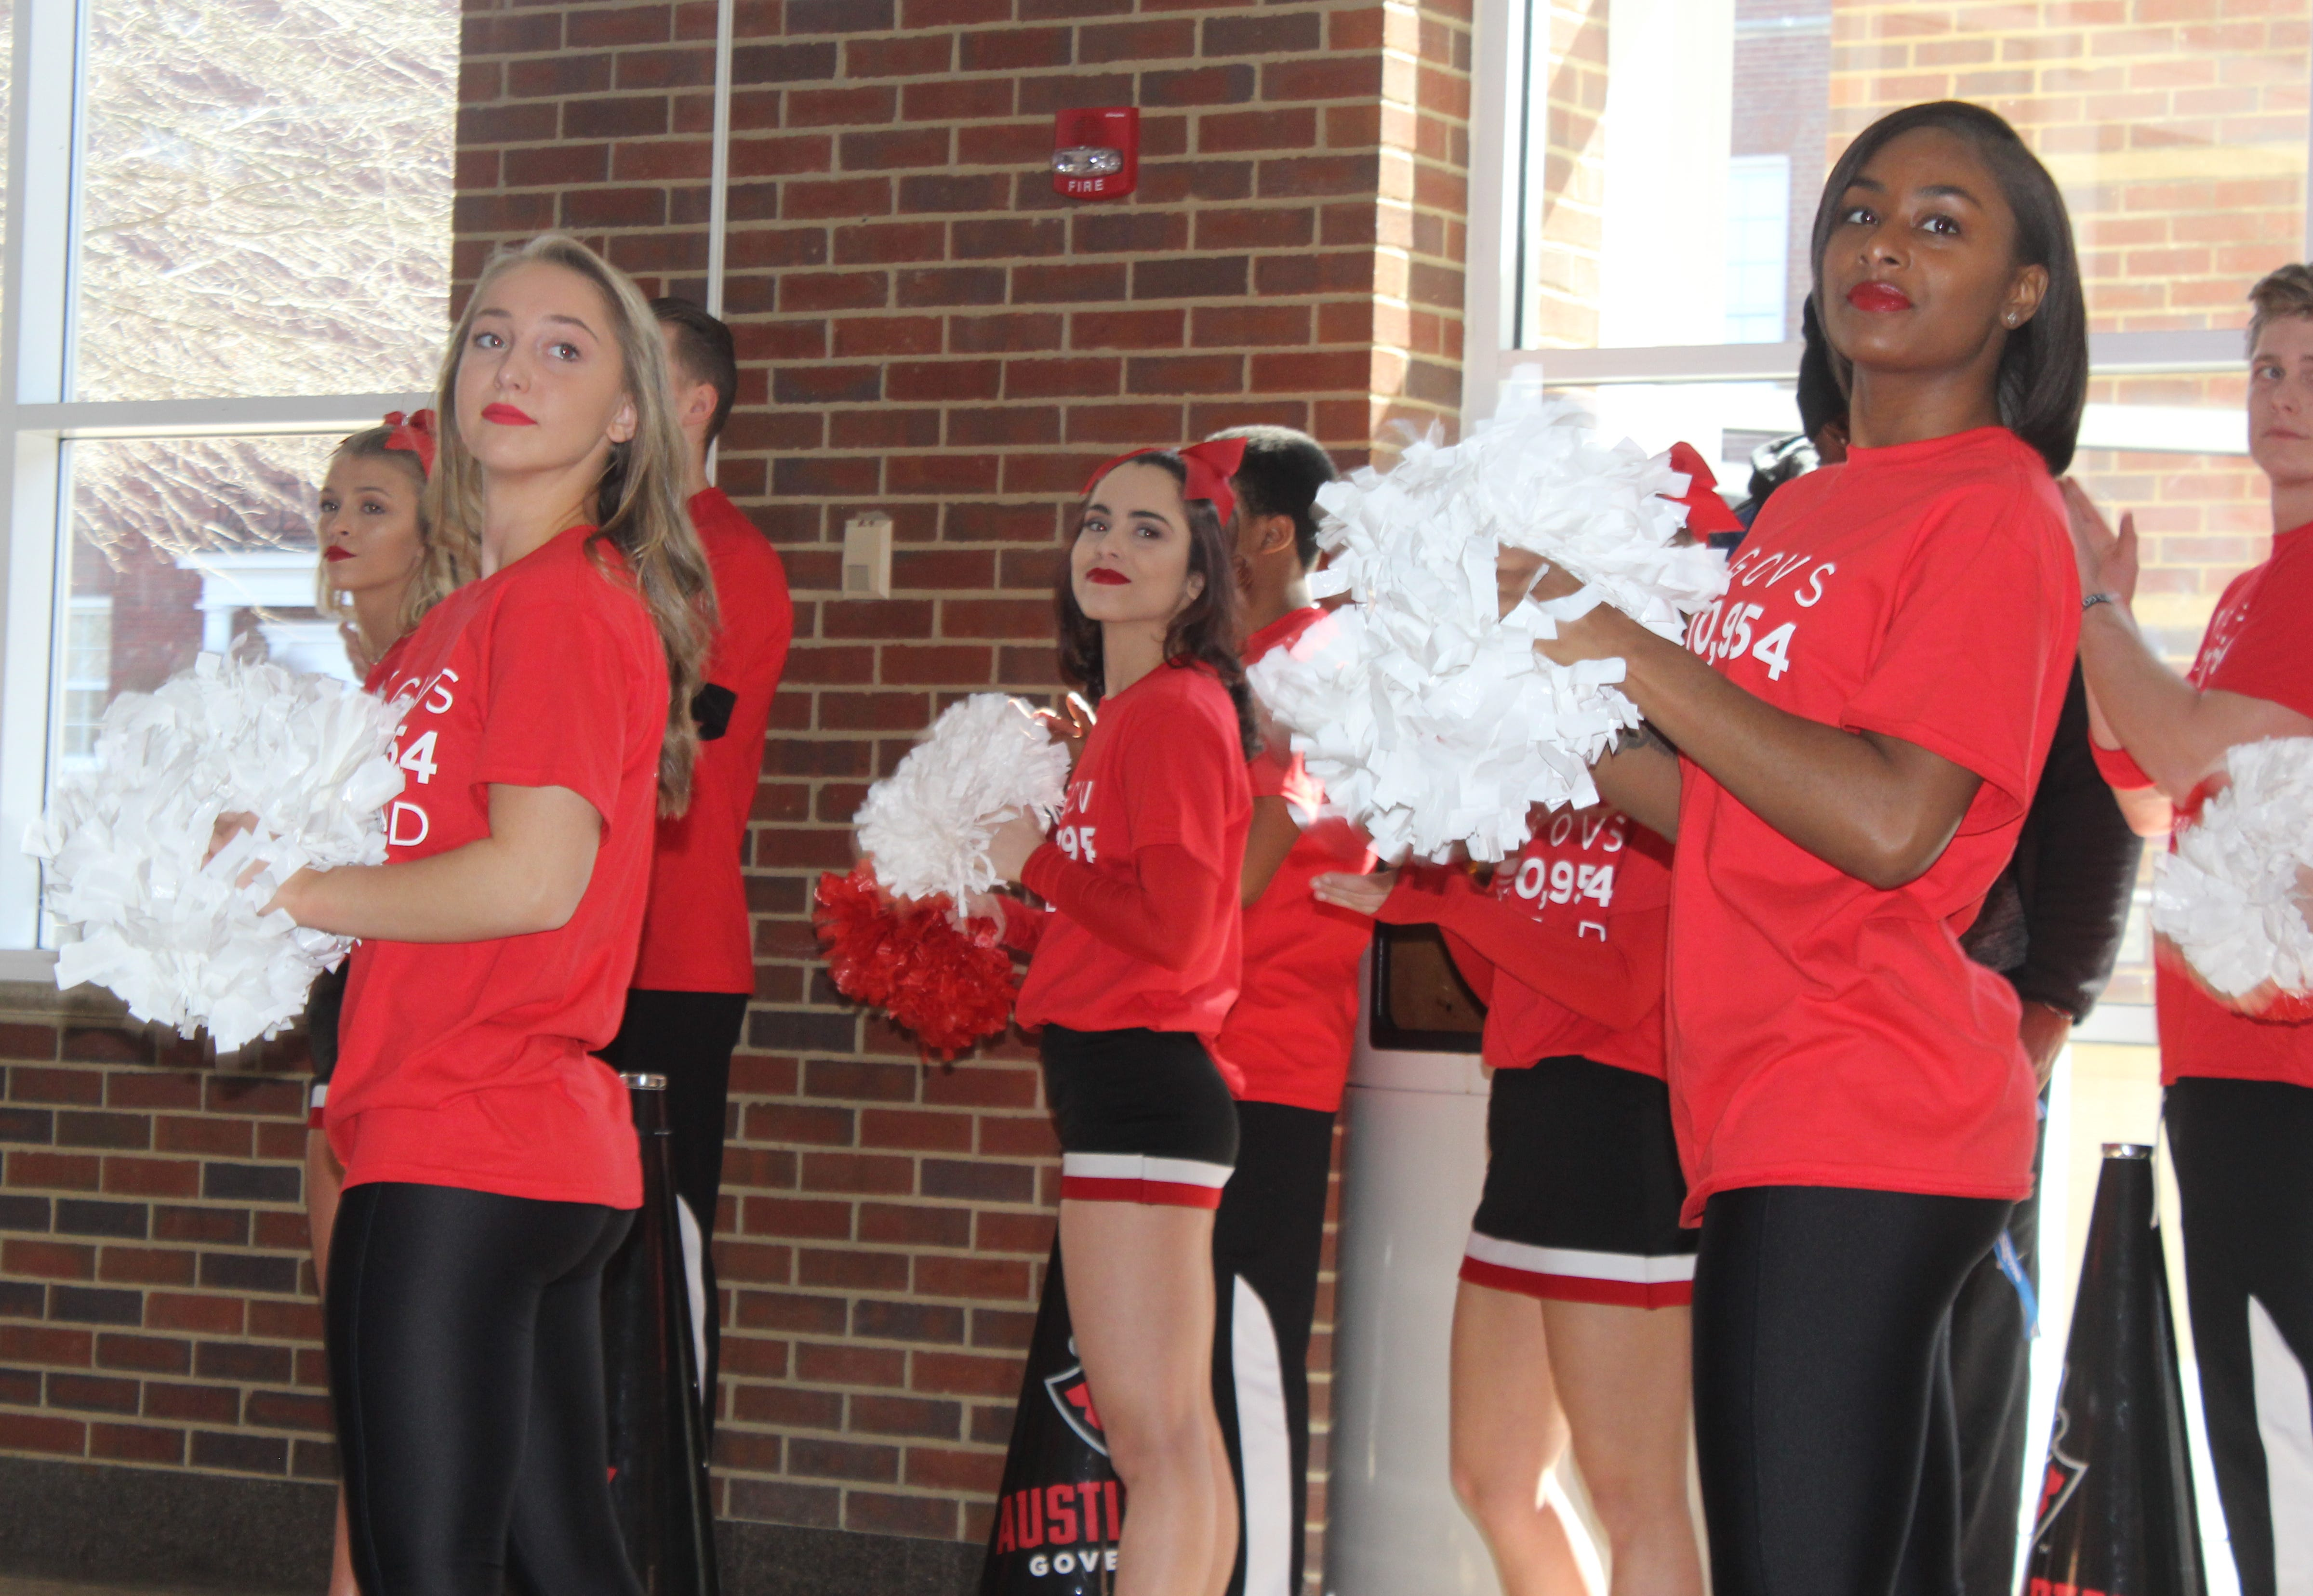 Austin Peay State University celebrated an enrollment milestone on Friday with a gathering to recognize the school's accomplishment of becoming the state's fastest growing public university.